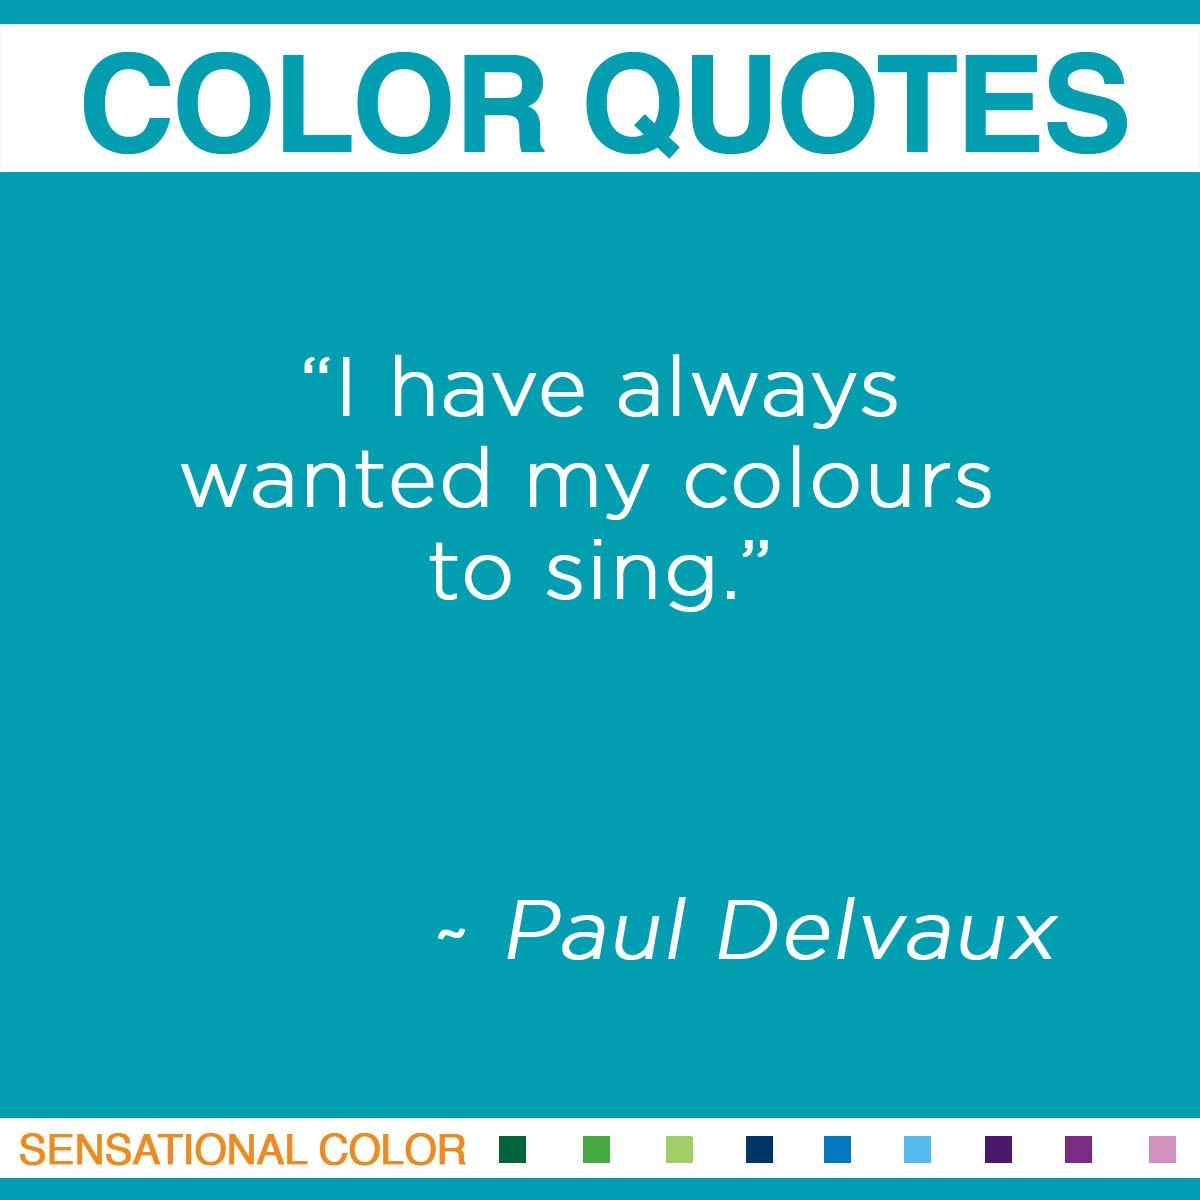 """I have always wanted my colours to sing."" - Paul Delvaux"